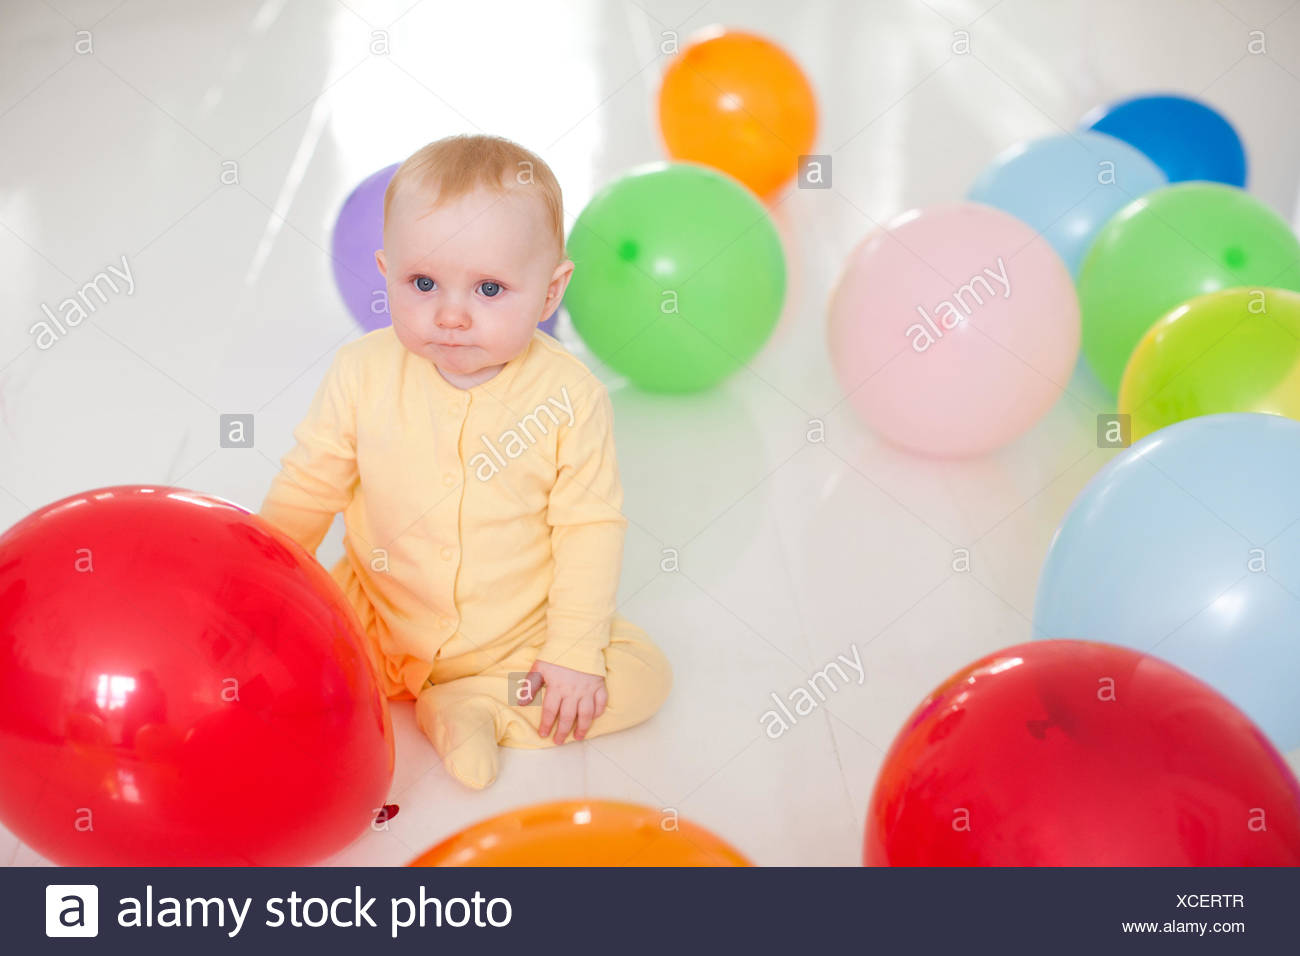 Curious baby with balloons - Stock Image